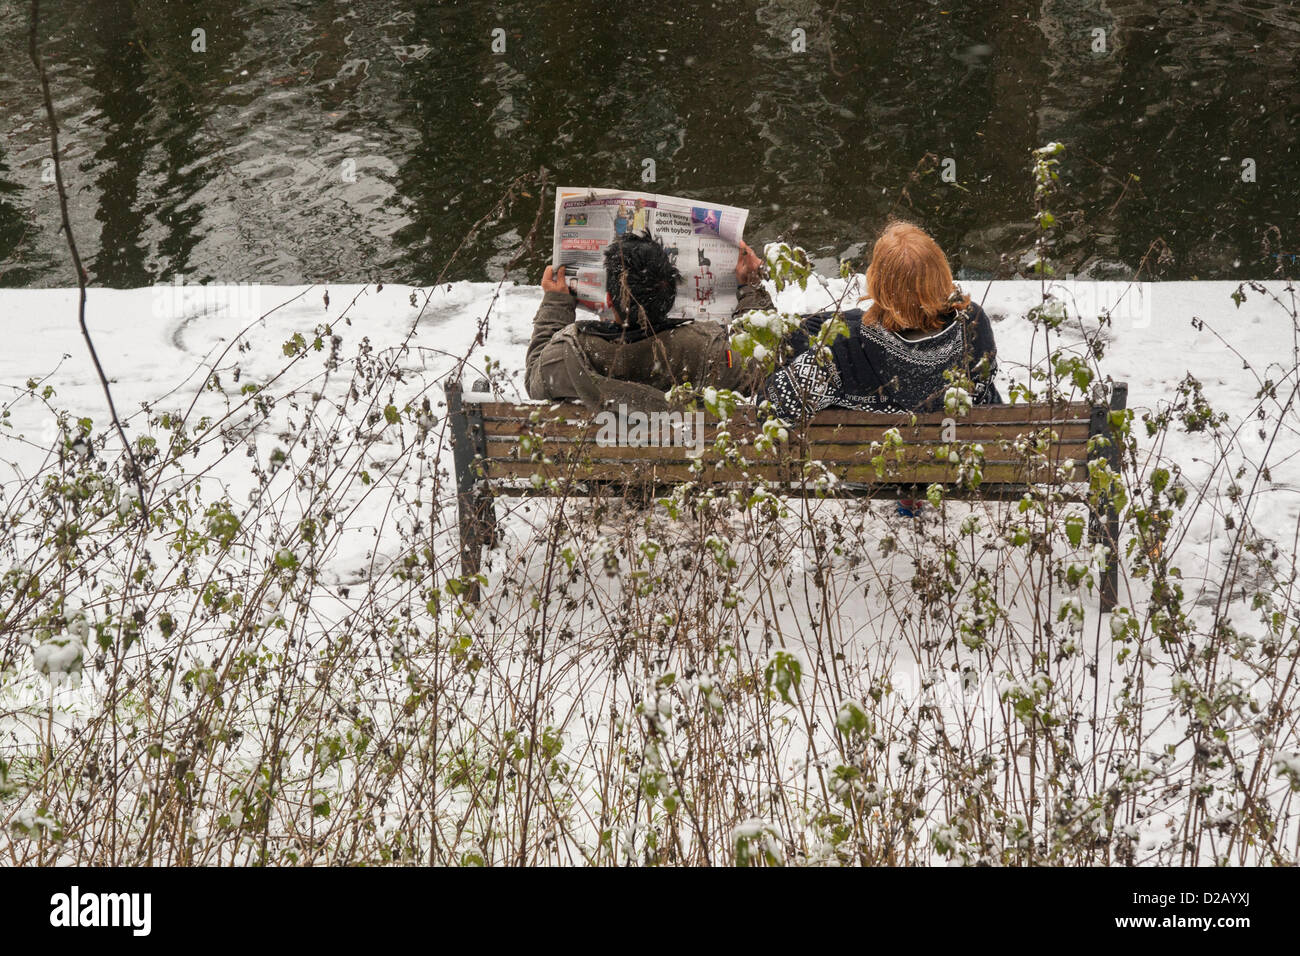 London, UK. 18th January 2013. chilling out on a bench along the Regent's Canal, Central London, as snow falls - Stock Image